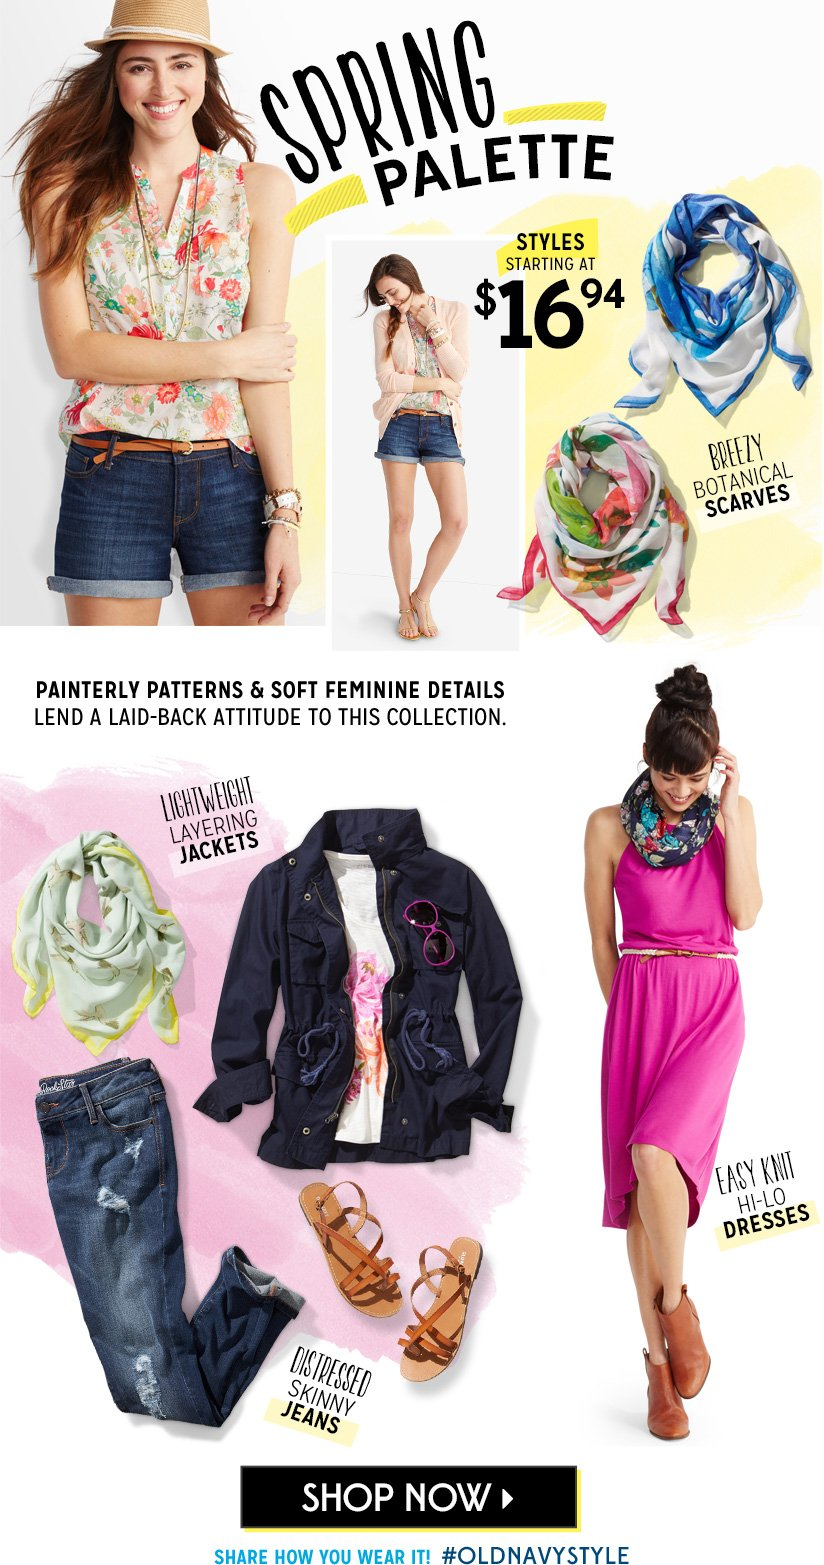 SPRING PALETTE   STYLES STARTING AT $16.94   BREEZY BOTANICAL SCARVES   LIGHTWEIGHT LAYERING JACKETS   EASY KNIT HI-LO DRESSES   DISTRESSED SKINNY JEANS   SHOP NOW   SHARE HOW YOU WEAR IT! #OLDNAVYSTYLE